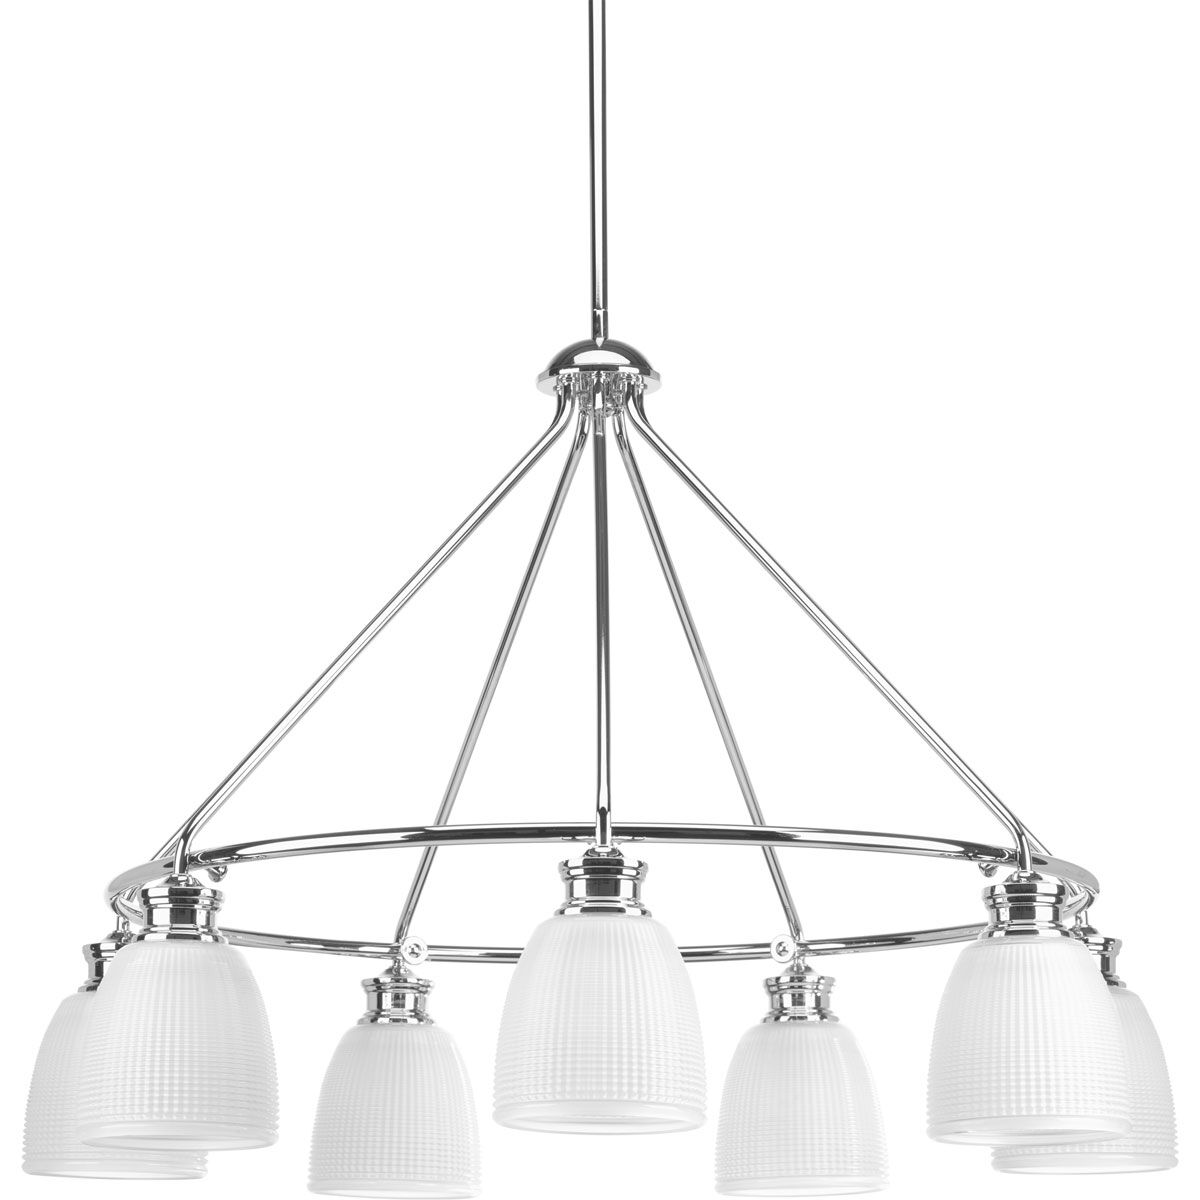 Feissal 7-Light Shaded Chandelier Finish: Polished Chrome